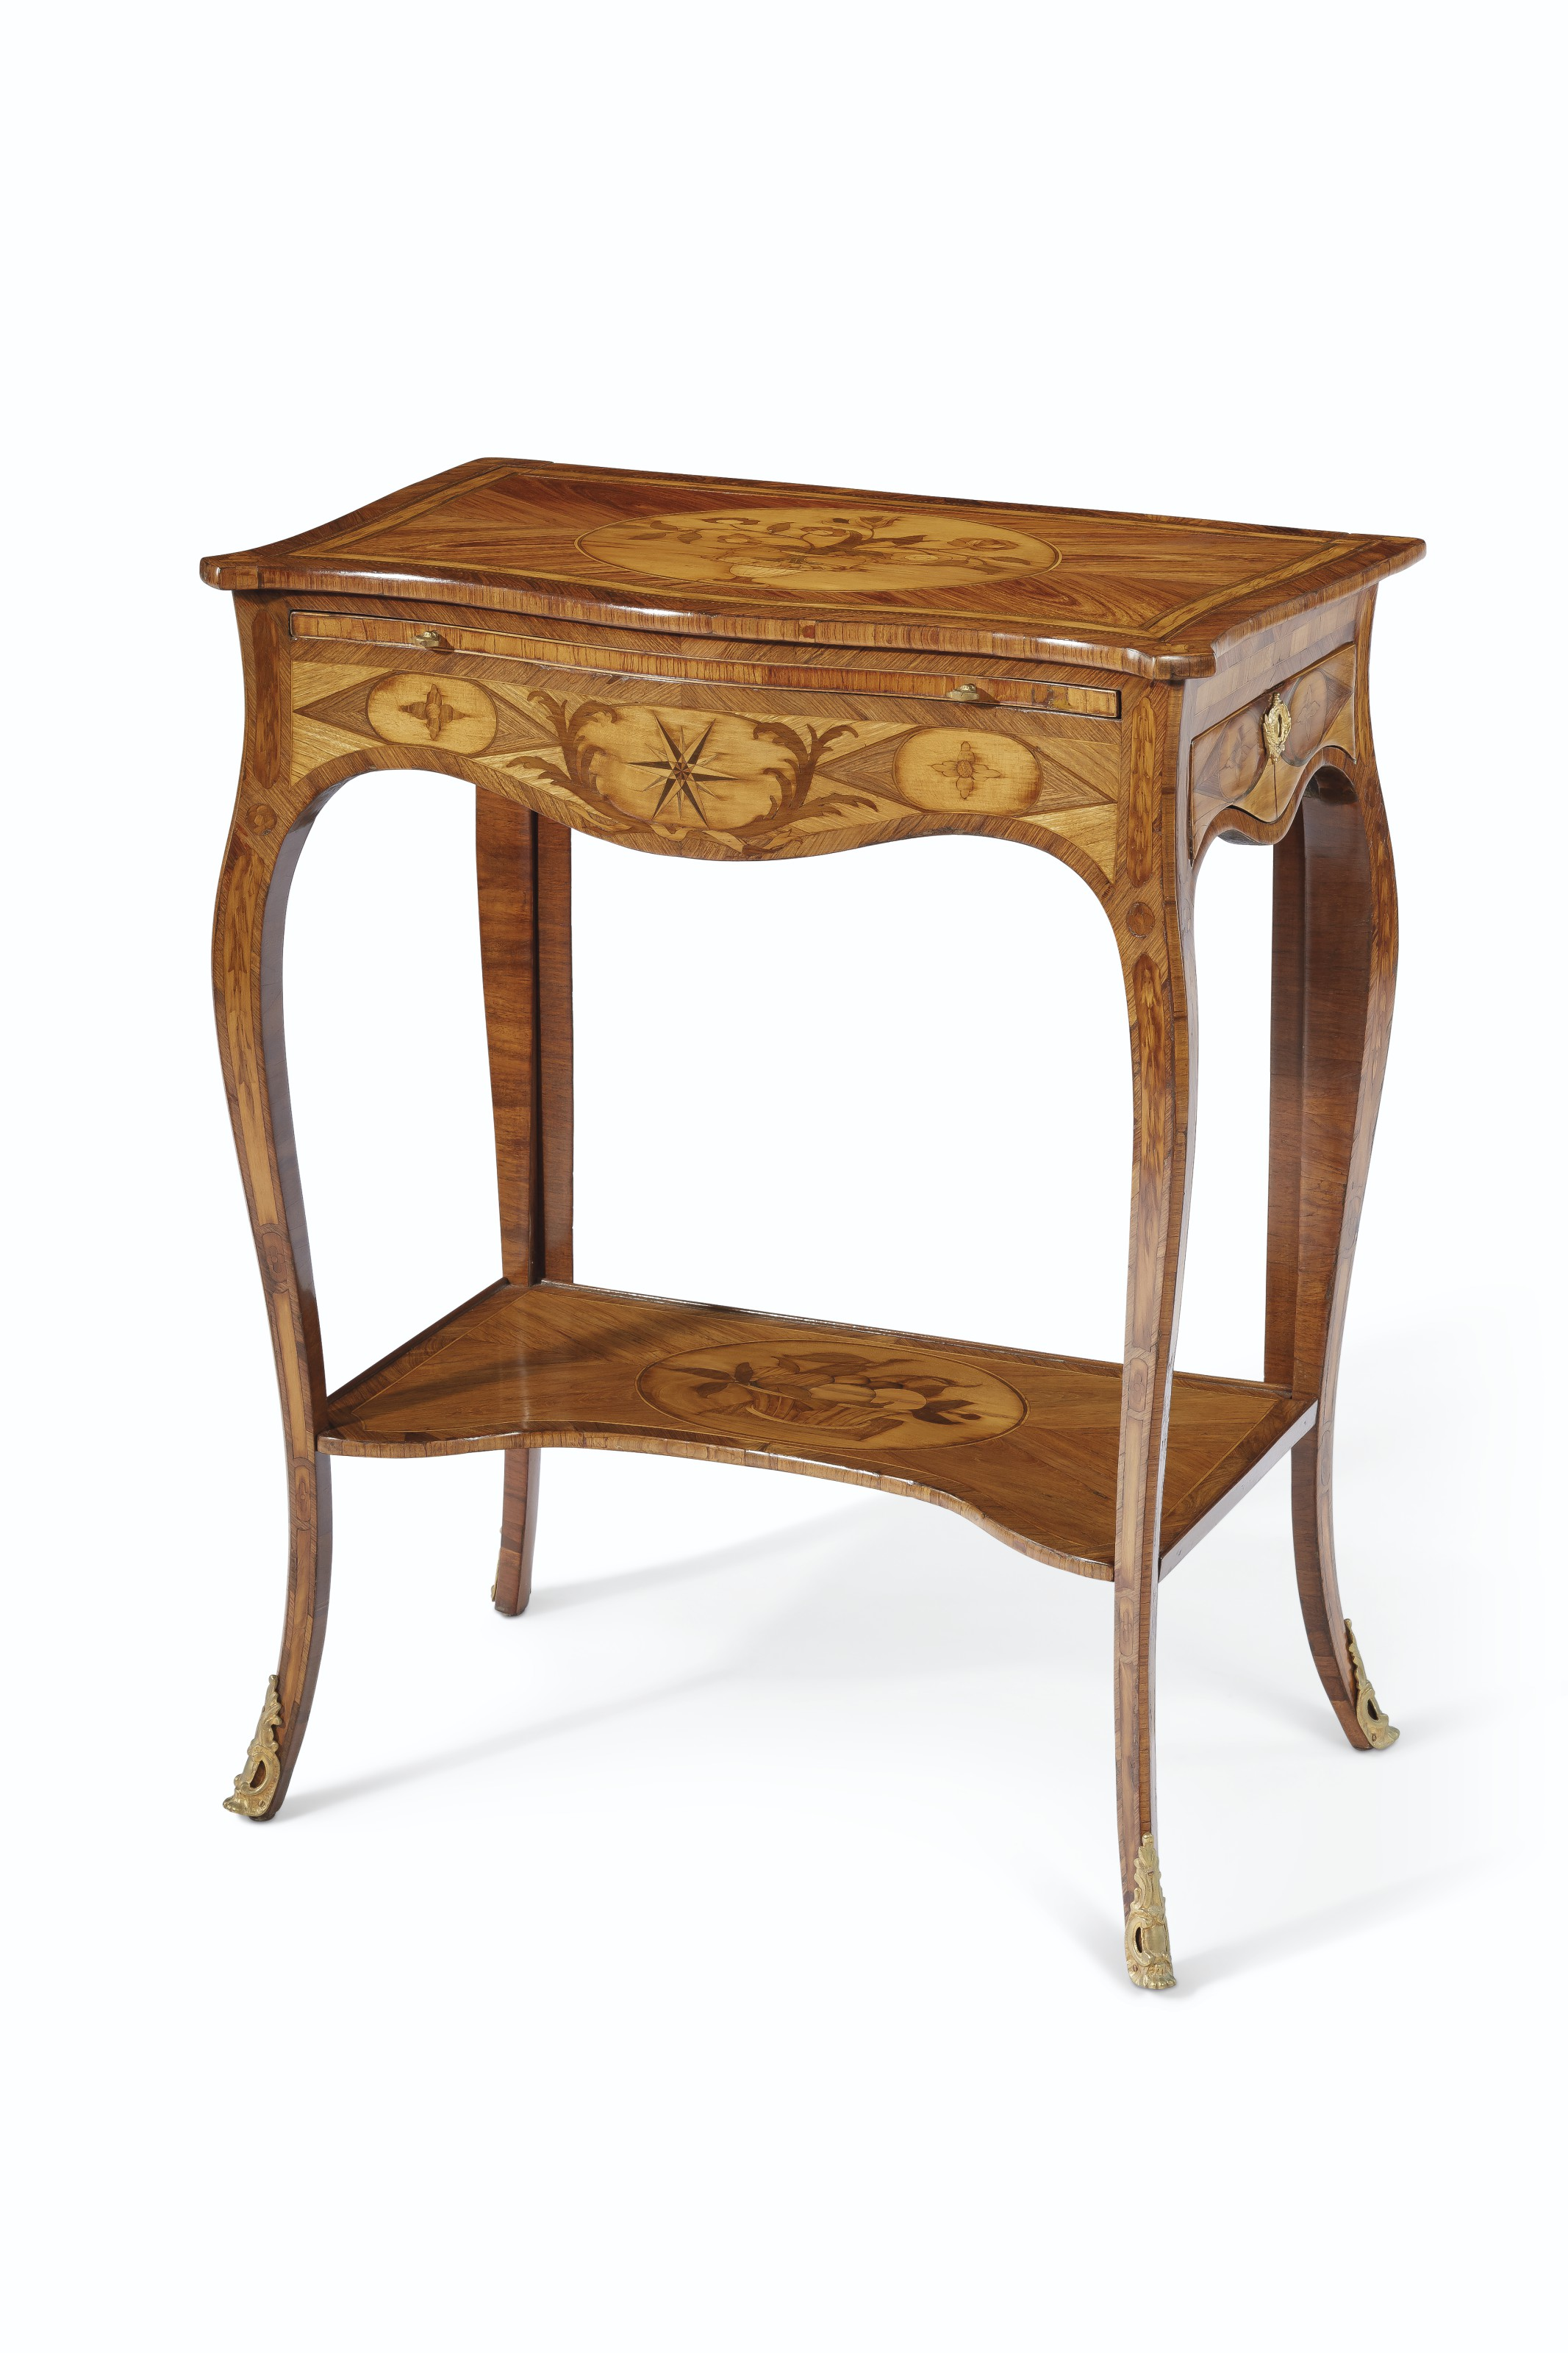 A GEORGE III ORMOLU-MOUNTED KINGWOOD, TULIPWOOD AND MARQUETRY WRITING TABLE